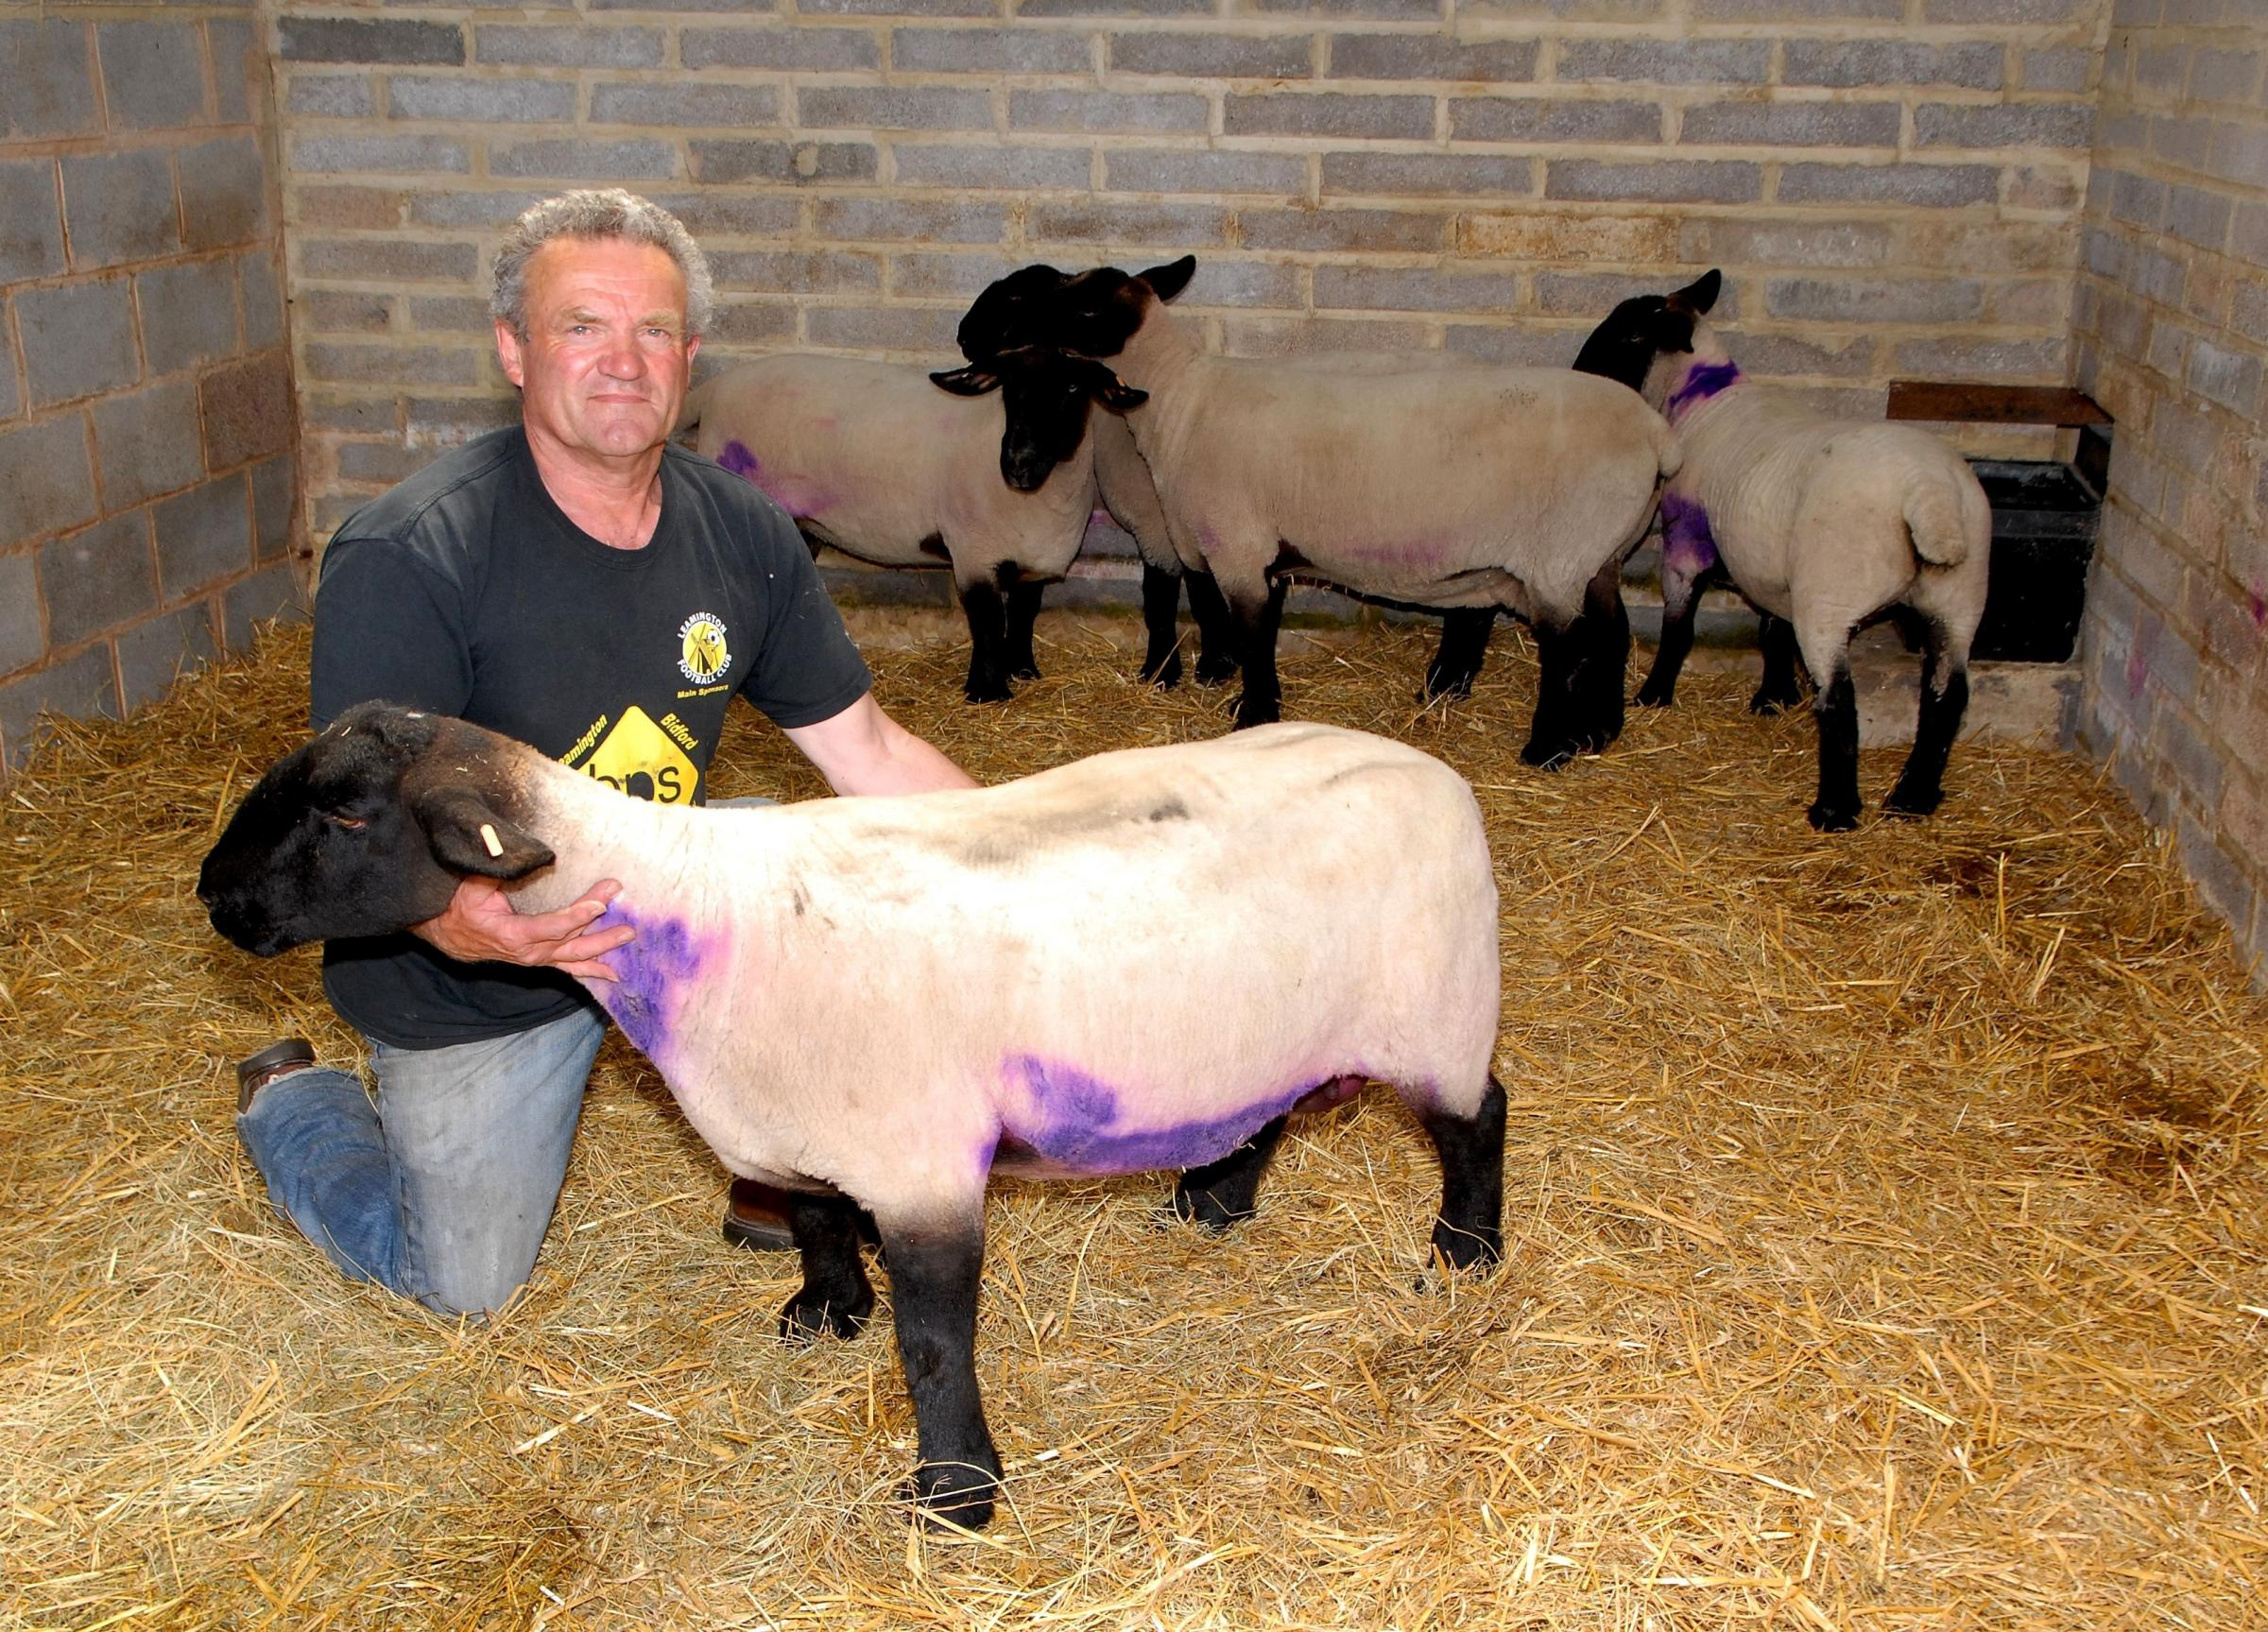 LUCKY ESCAPE: Peter Smith had five of his sheep mauled by two dogs, including a prize winning Suffolk. 2414620301